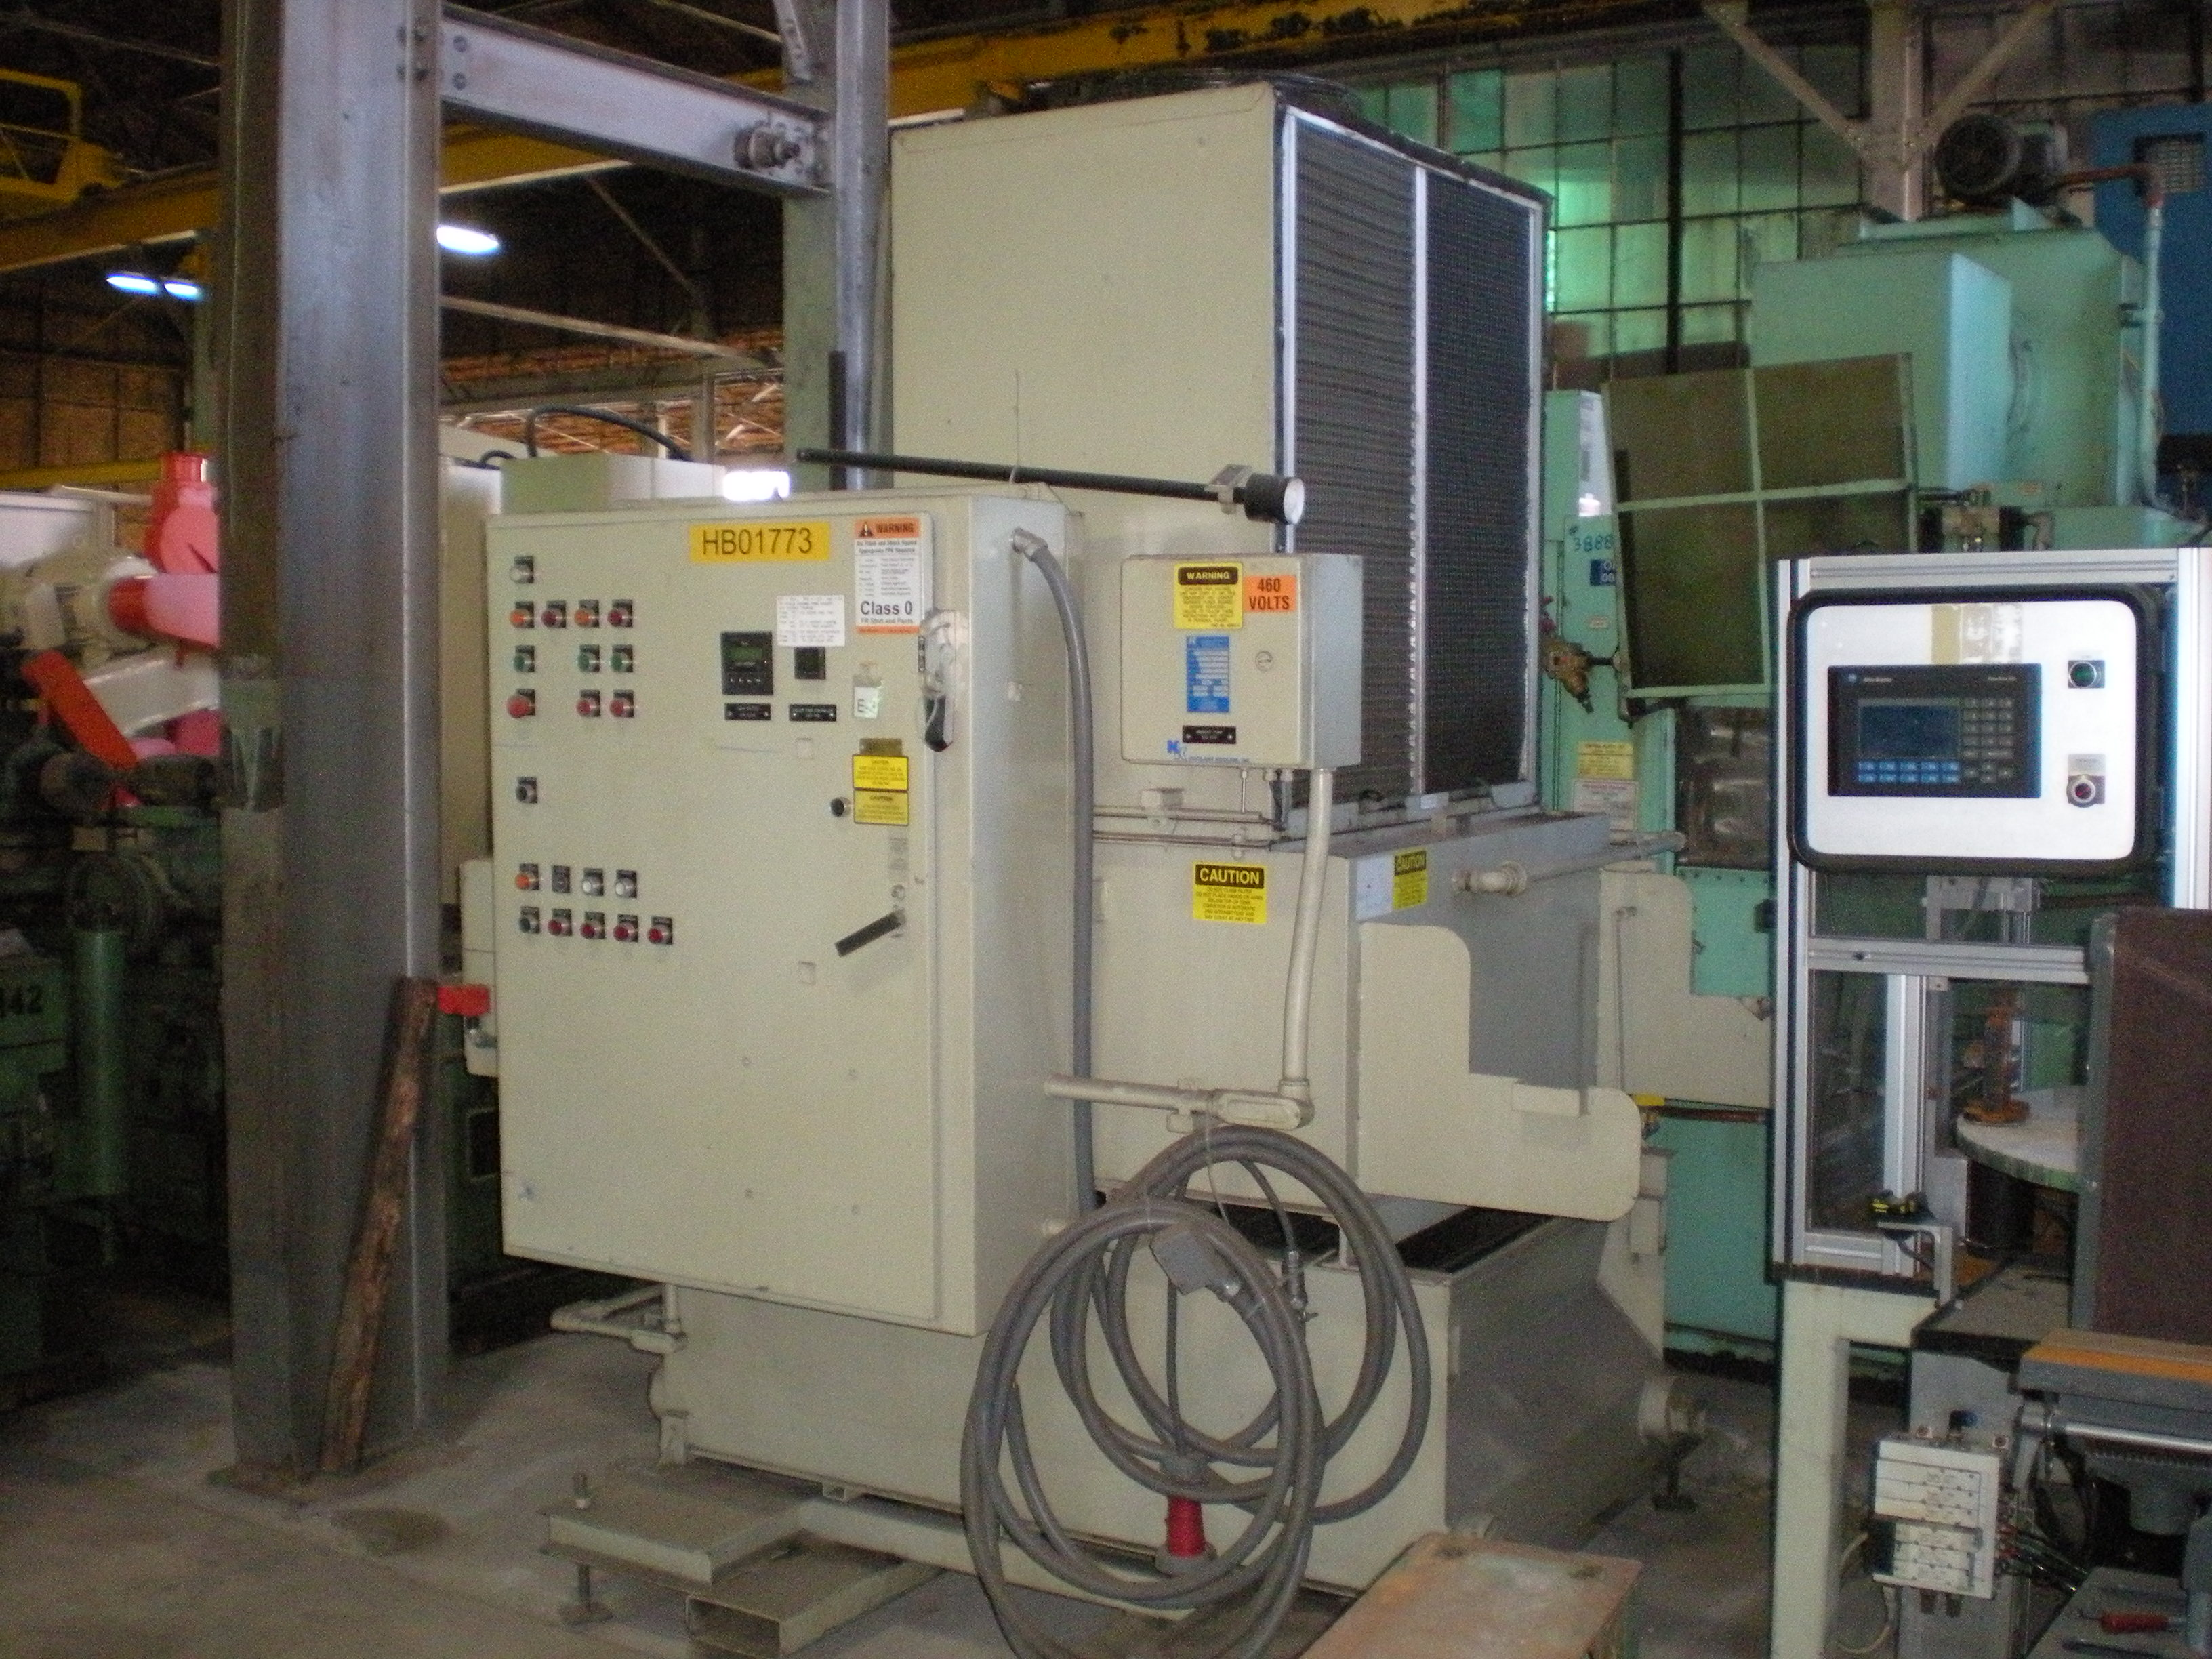 D.E. SMITH, No. LV638, Koolant Koolers Chiller, 80-100 GPM, 2002, Nice